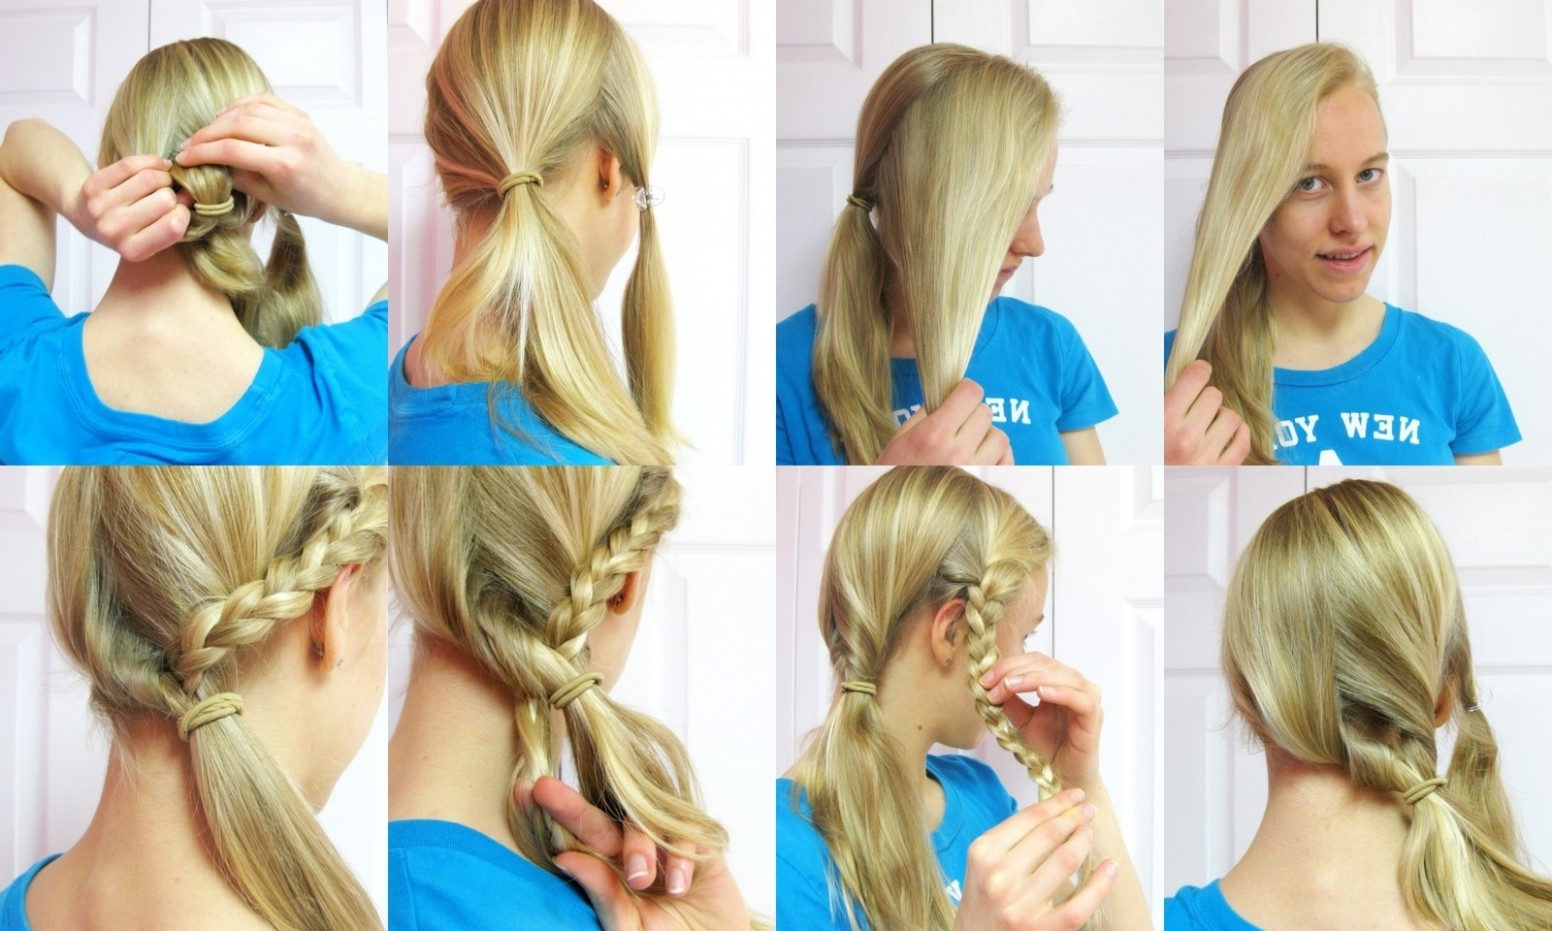 Current Side Ponytail Hairstyles With Braid Throughout The Biggest Contribution Of Side Ponytail Hairstyles To Humanity (View 5 of 20)